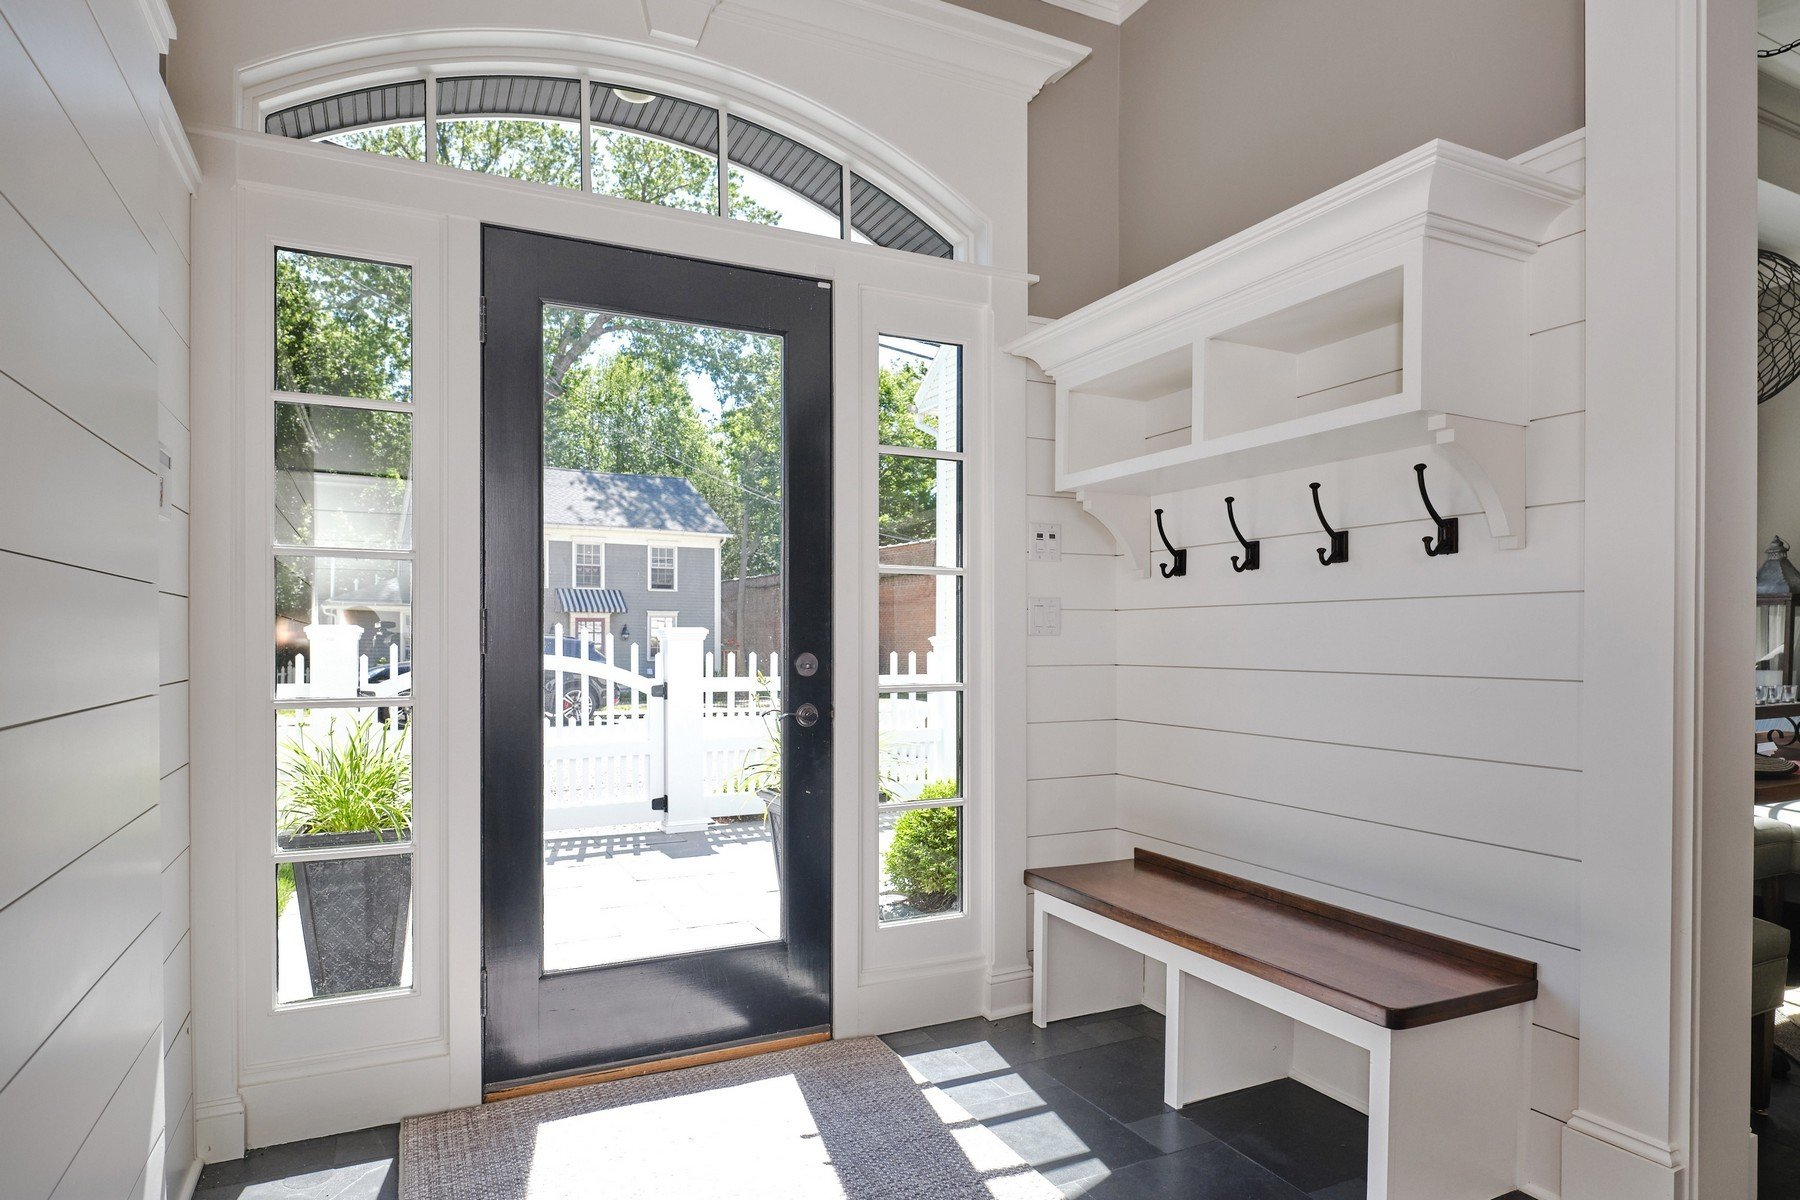 Mudroom foyer with shiplap painted white using Mountain peak by Benjamin Moore.